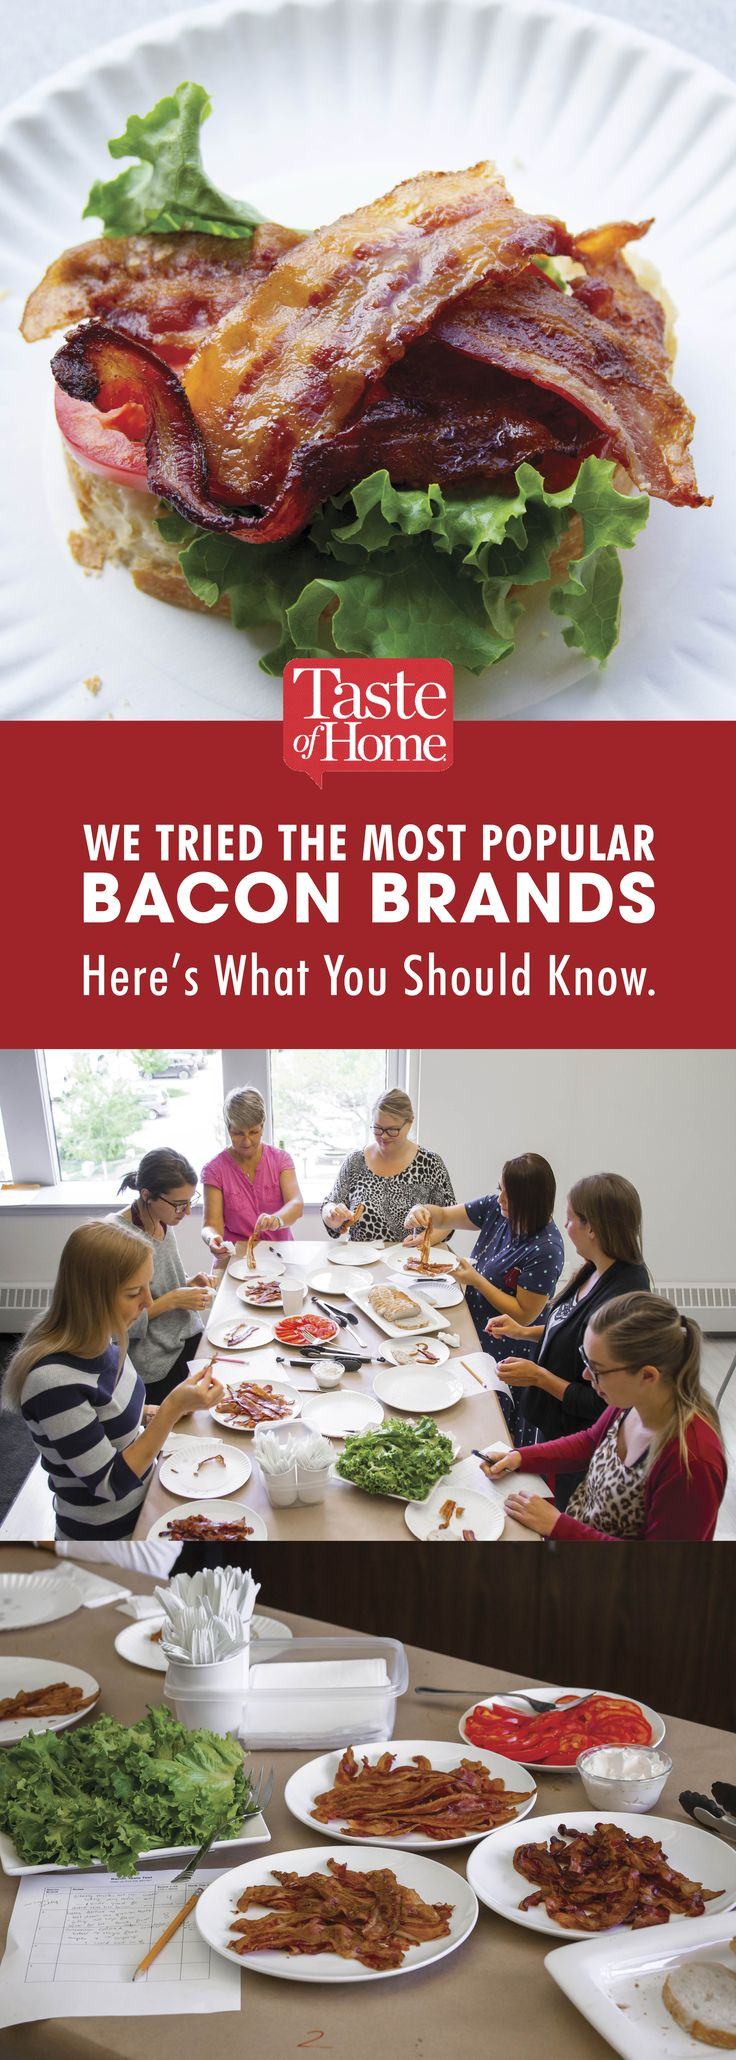 We Tried the Most Popular Bacon Brands. Here's What You Should Know (from Taste of Home)